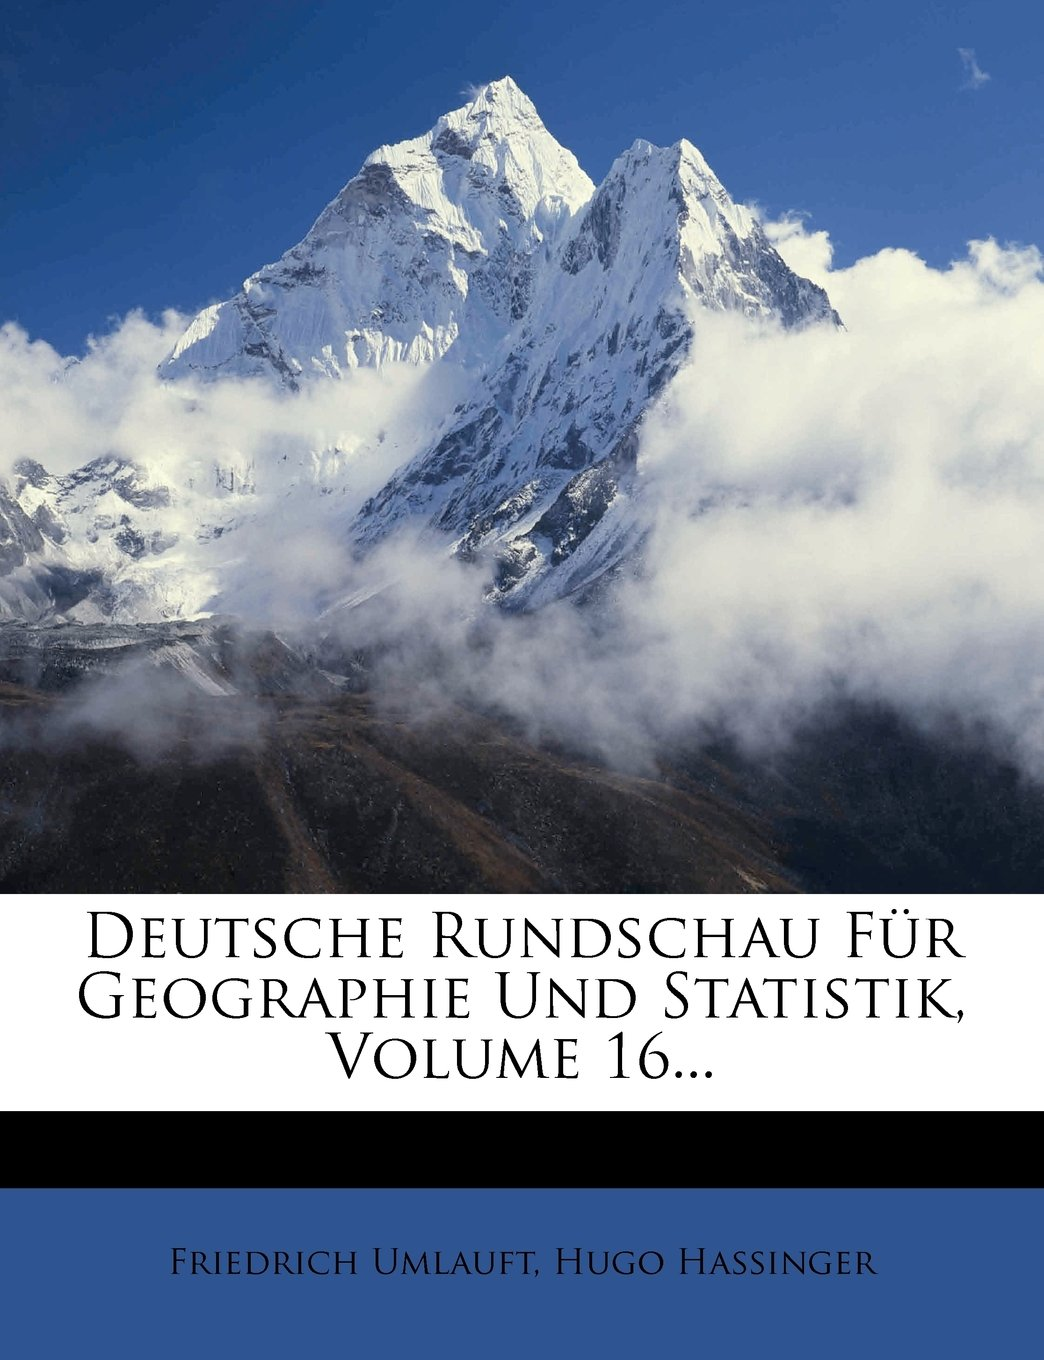 Download Deutsche Rundschau Fur Geographie Und Statistik, Volume 16... (German Edition) ebook